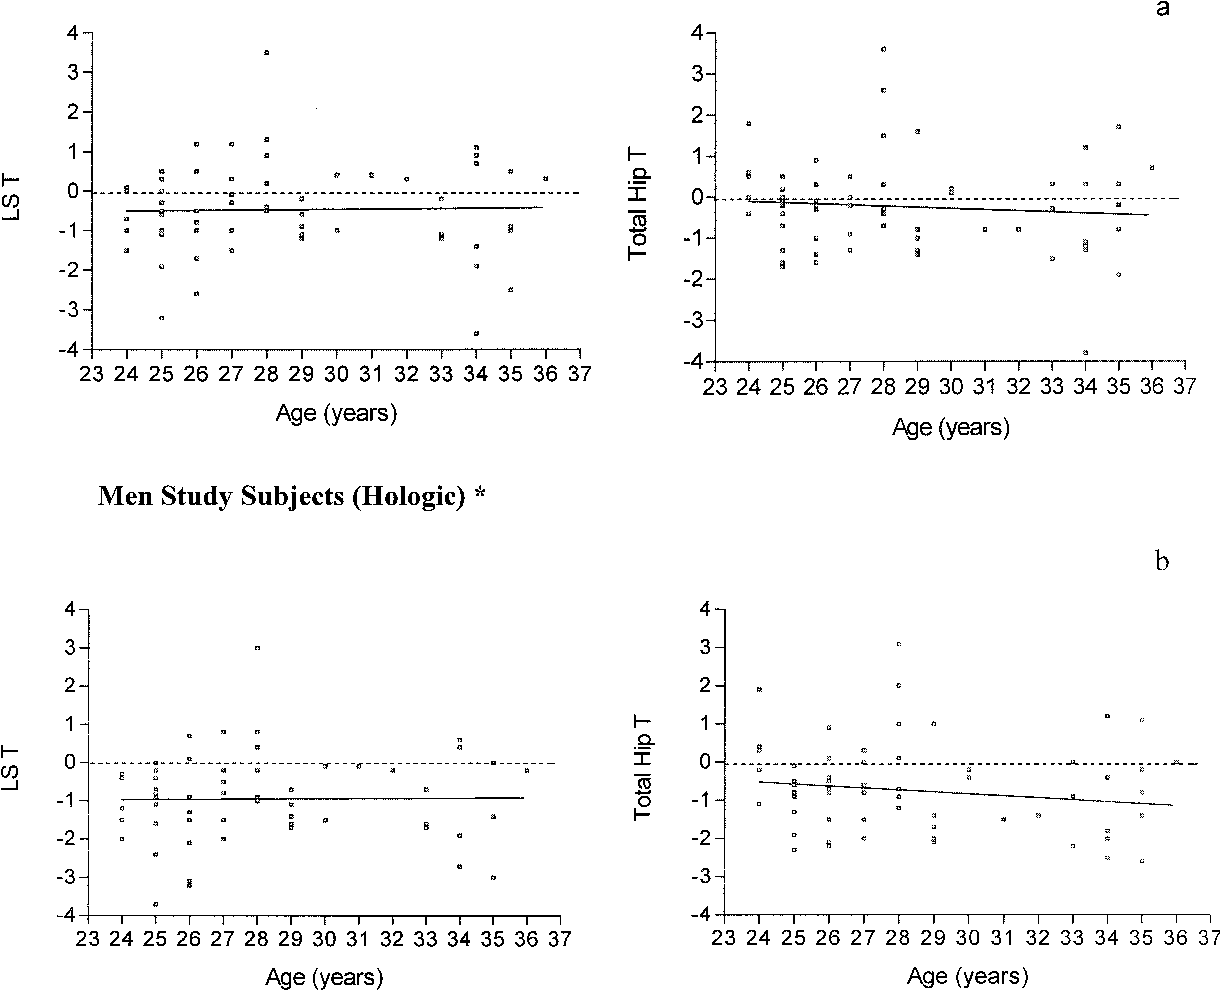 Figure 2. Individual lumbar spine (LS) T scores and total hip T scores for men. The dotted line represents the regression around data points using the manufacturer database for T-score calculation, the slope of which does not differ from zero. Data obtained on the (a) Lunar and (b) Hologic densitometer. * A total of 63 men evaluated with T scores derived from conversion formulas as detailed in Methods.